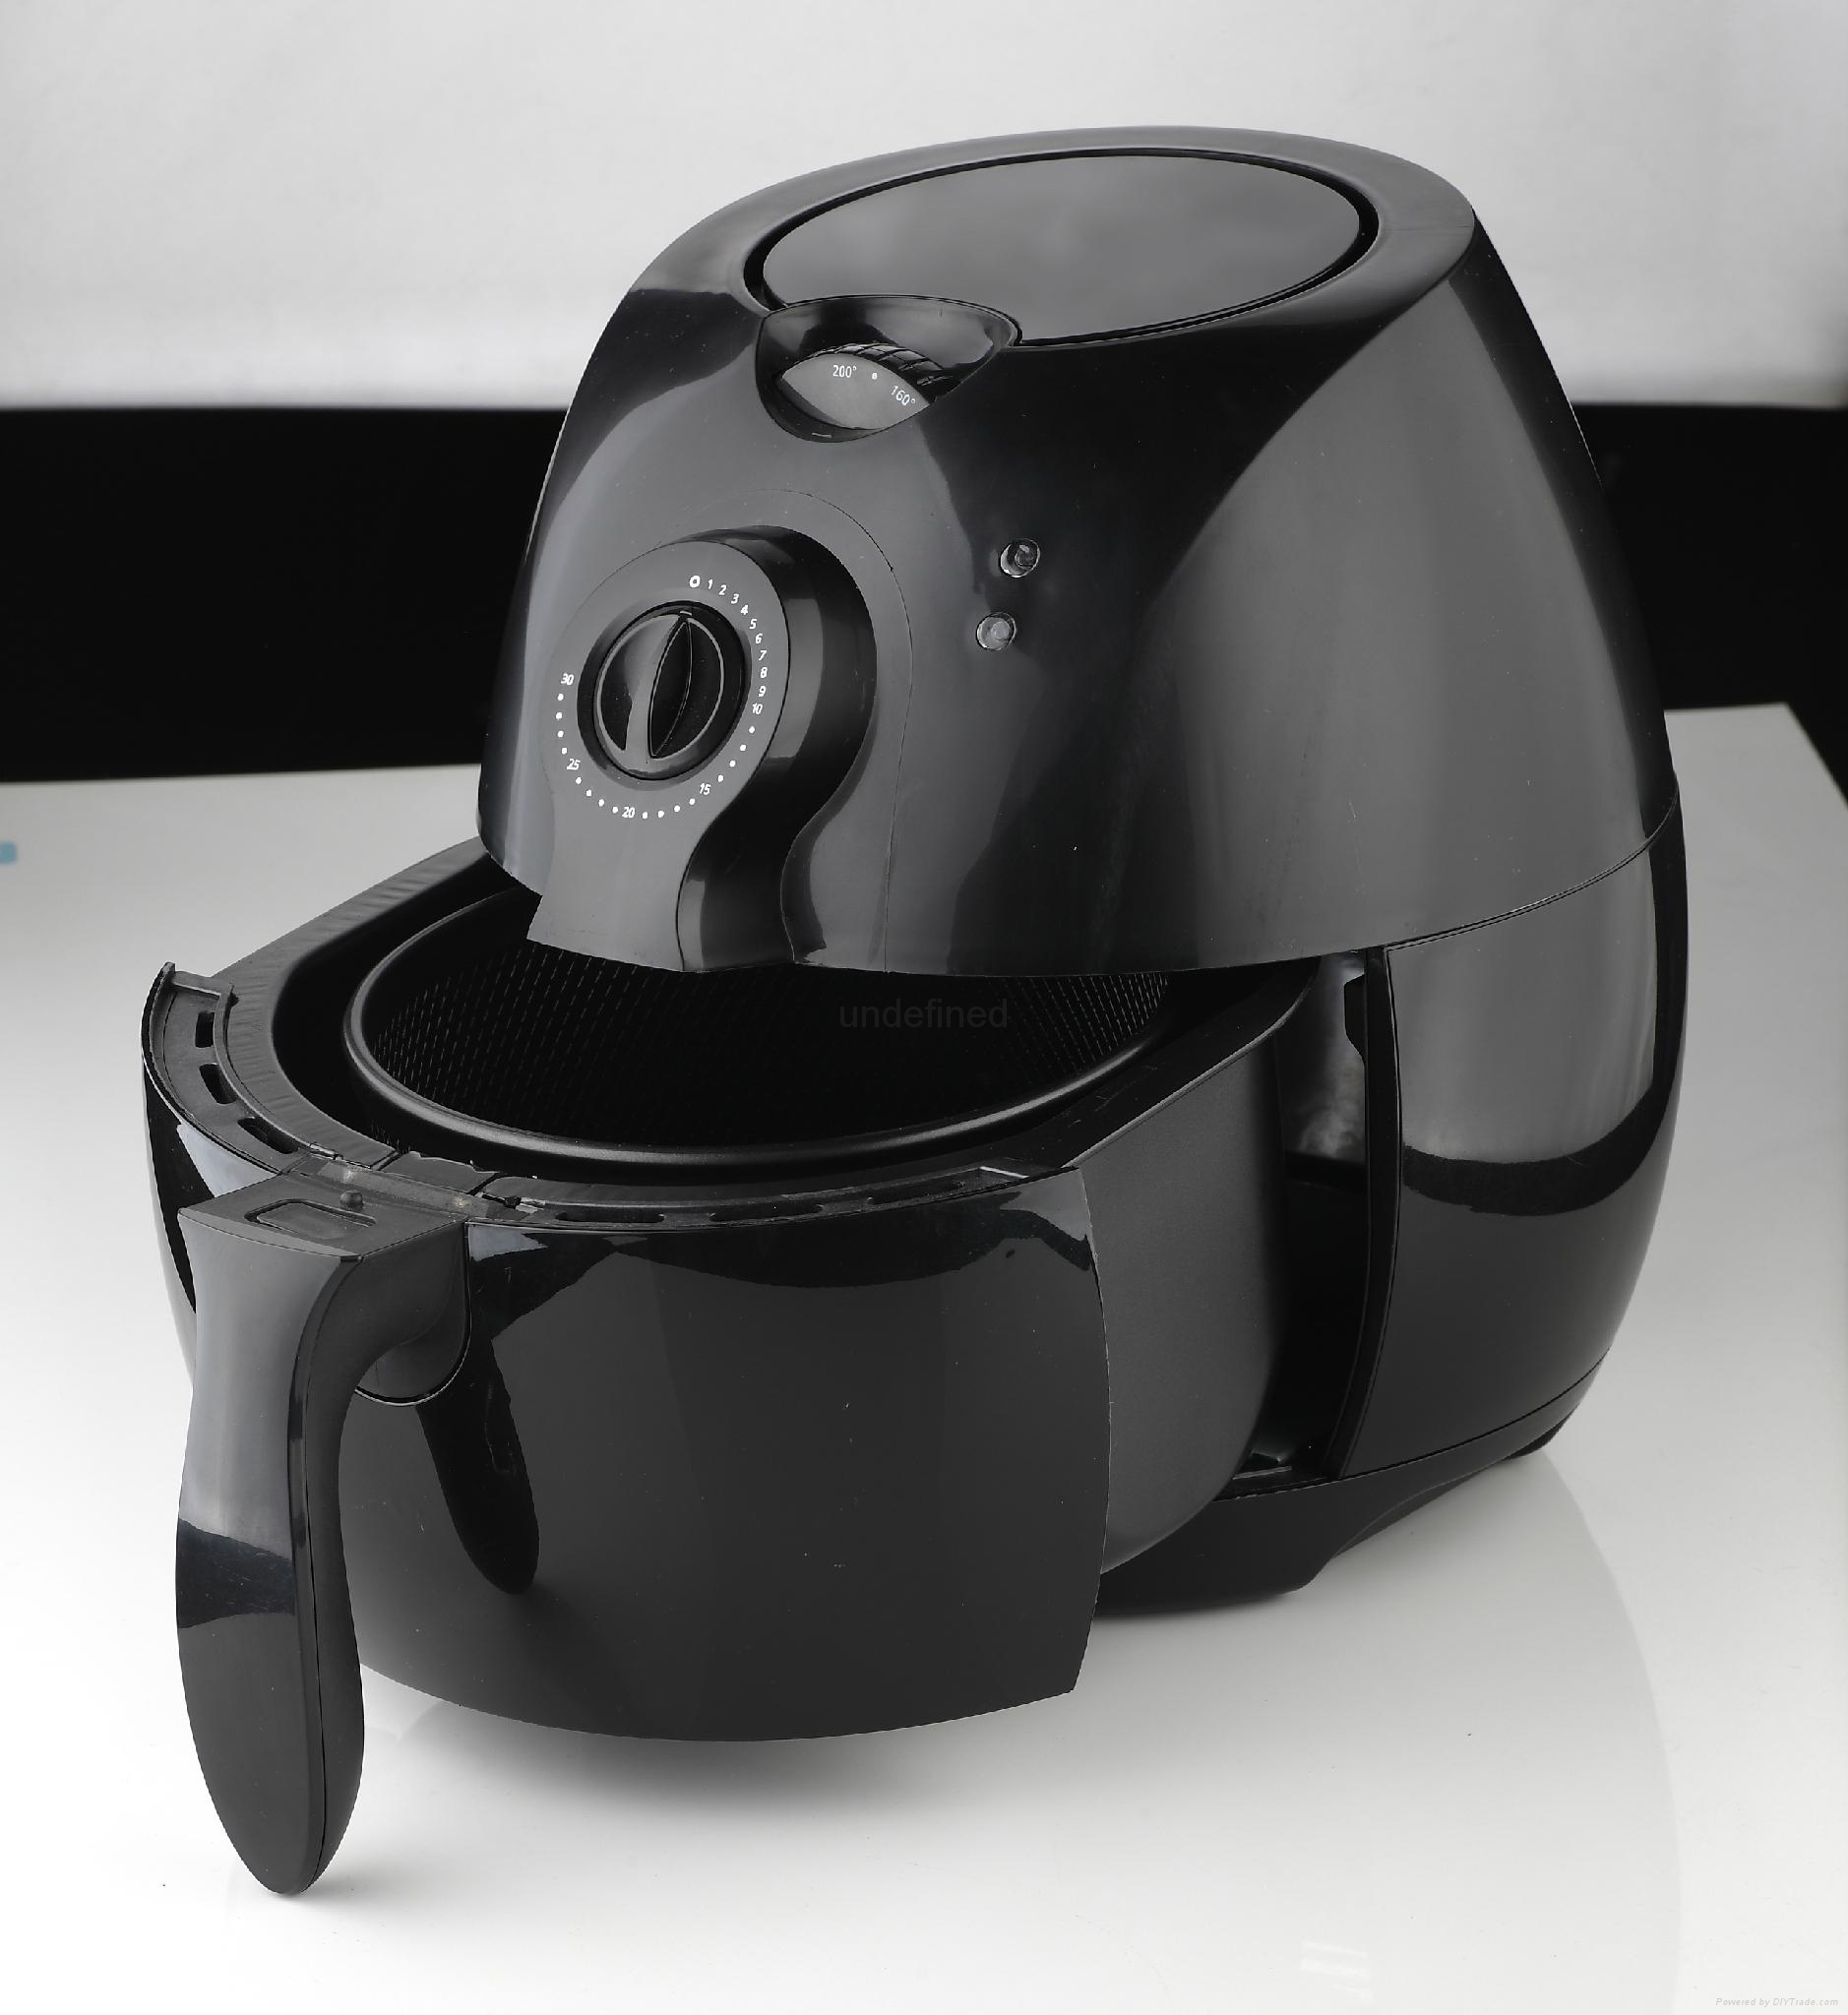 oilless air fryer  2